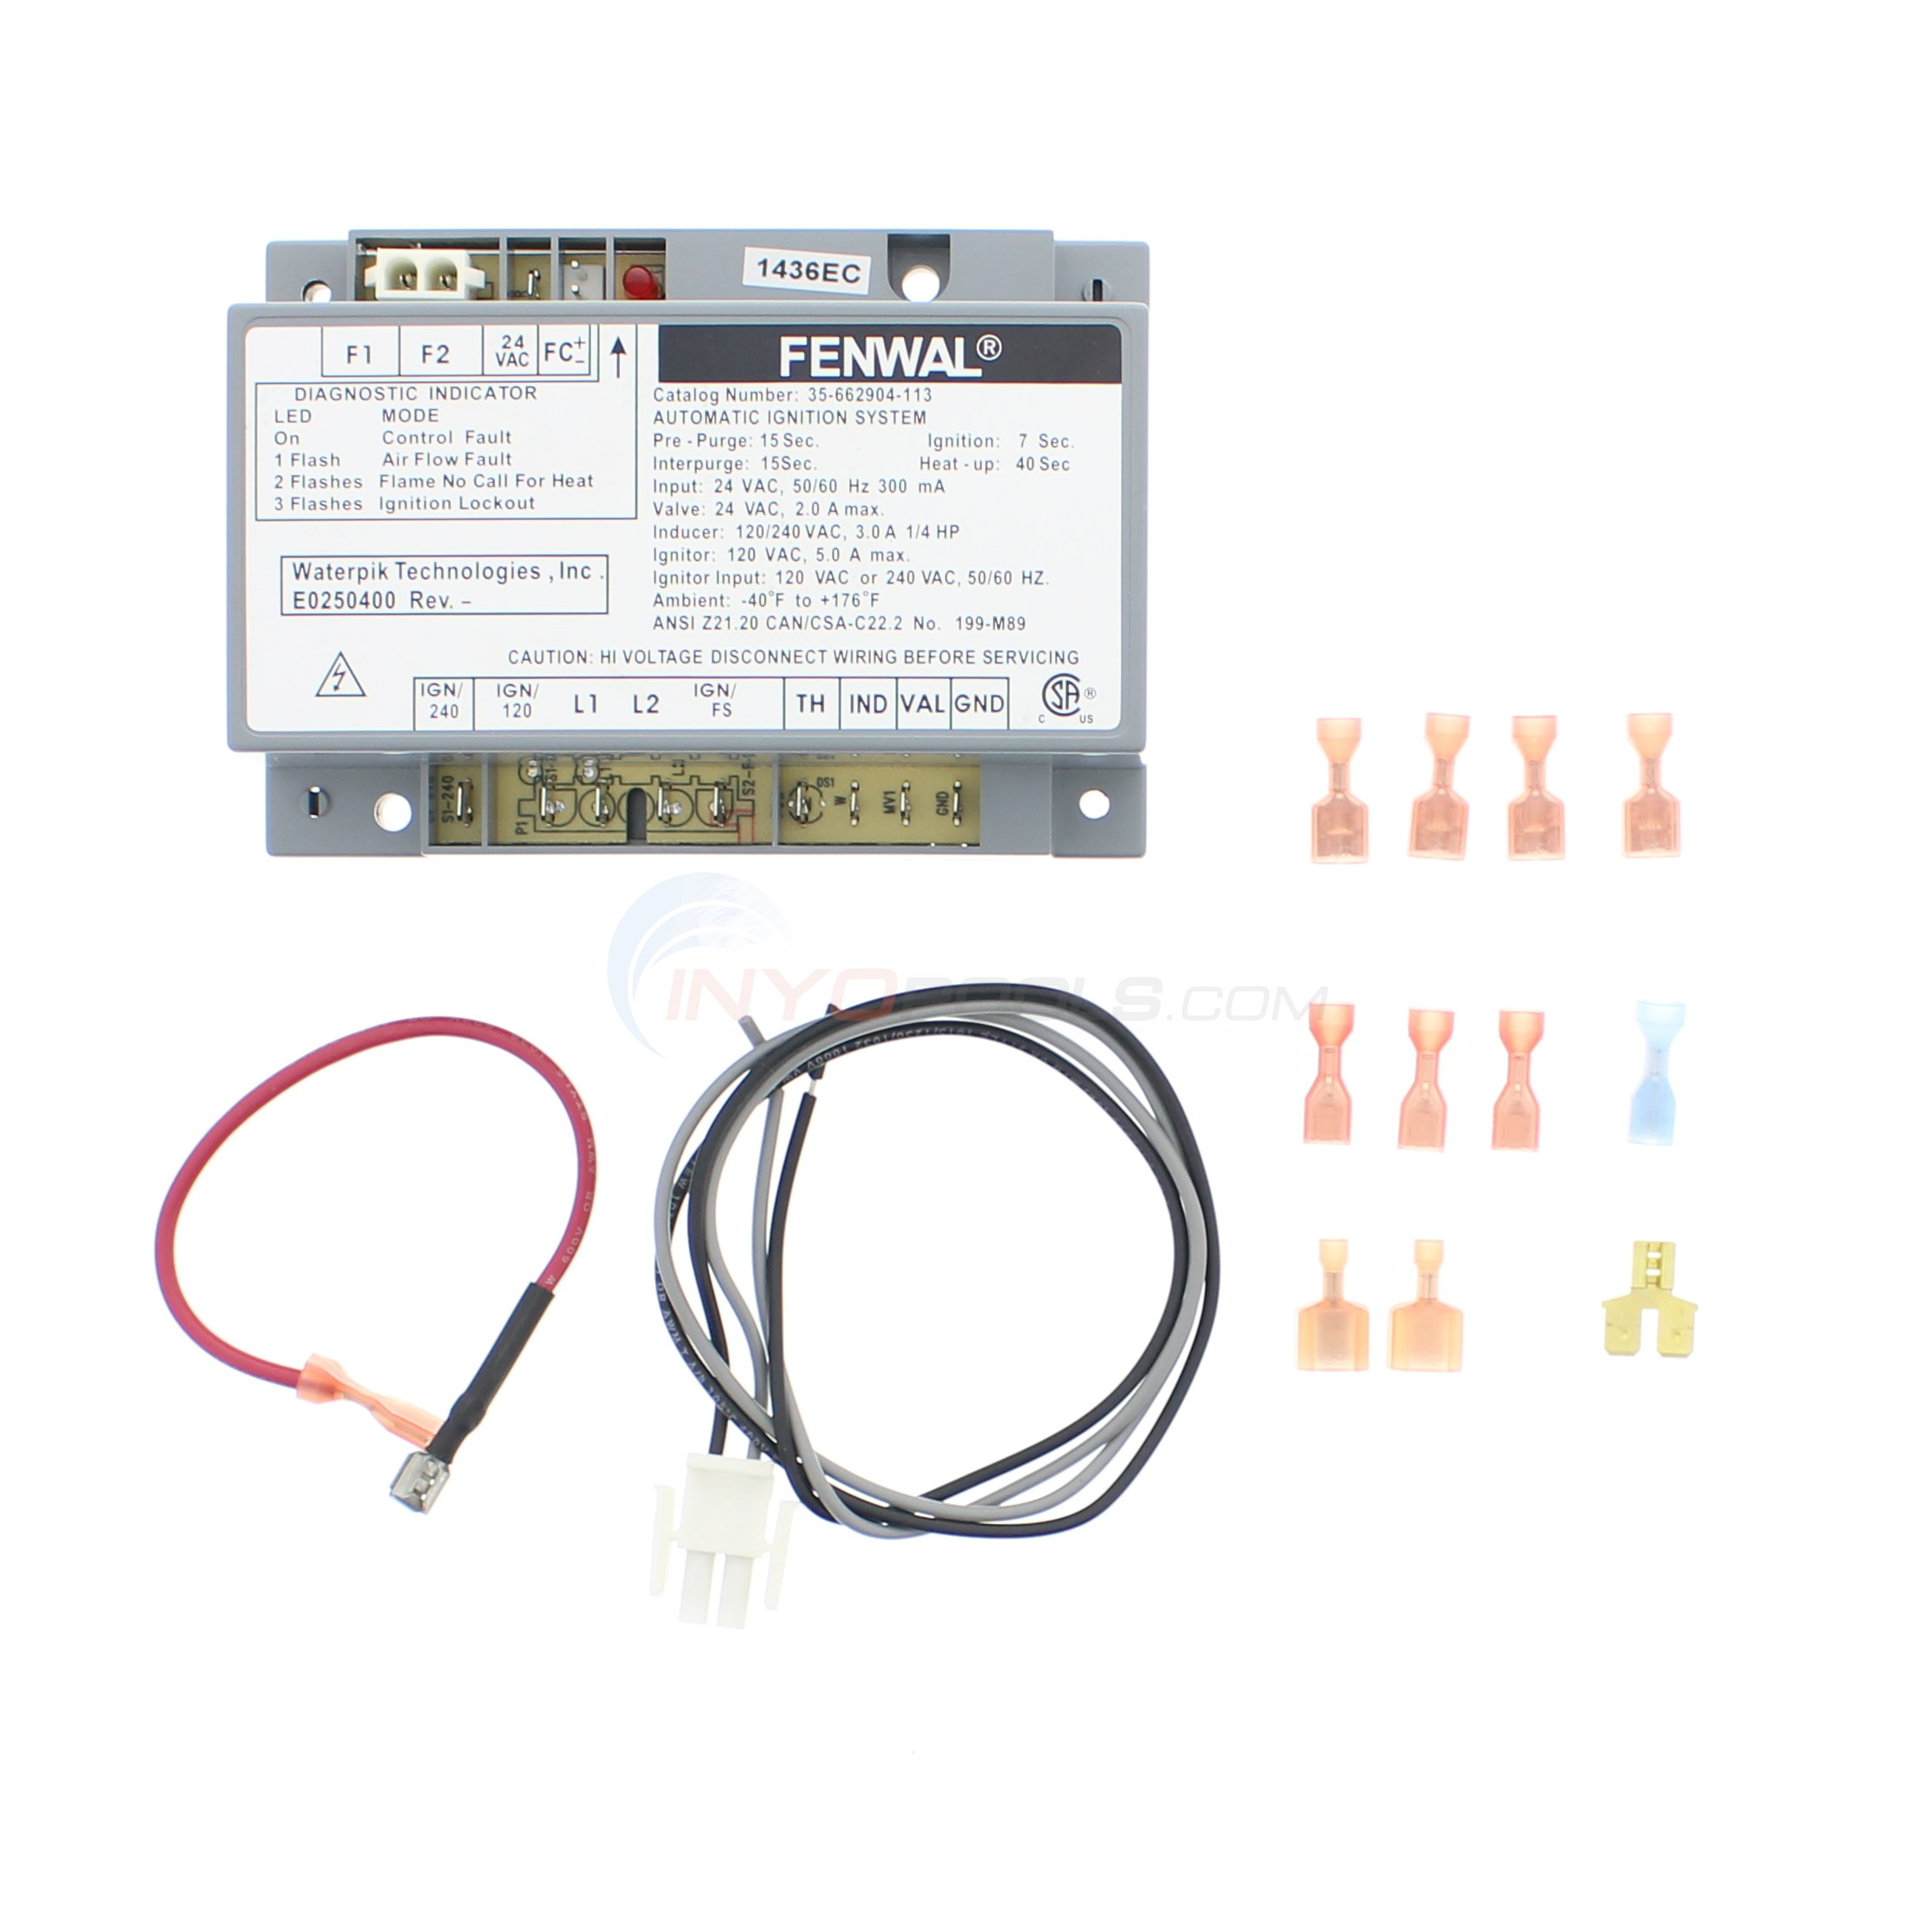 zodiac 6200 0304?format=jpg&scale=both&anchor=middlecenter&autorotate=true&mode=pad&width=650&height=650 zodiac ignition control assembly (r0408100) inyopools com fenwal ignition module wiring diagram at mifinder.co